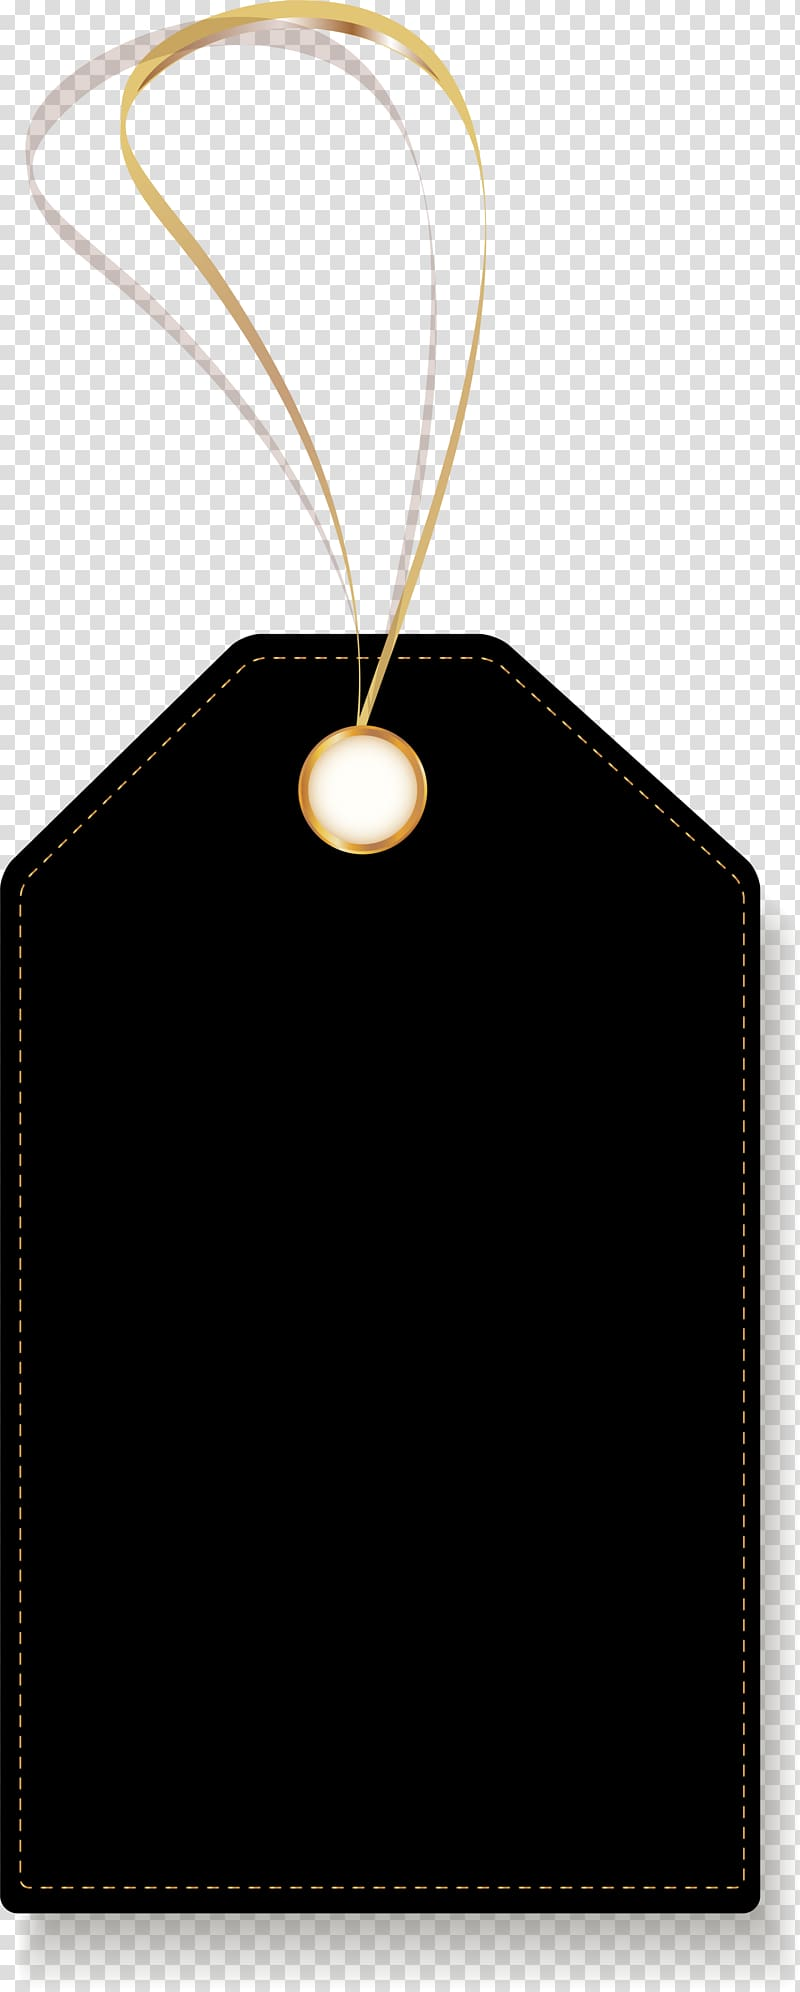 Product tag template, Price Tag Google Black, Black.